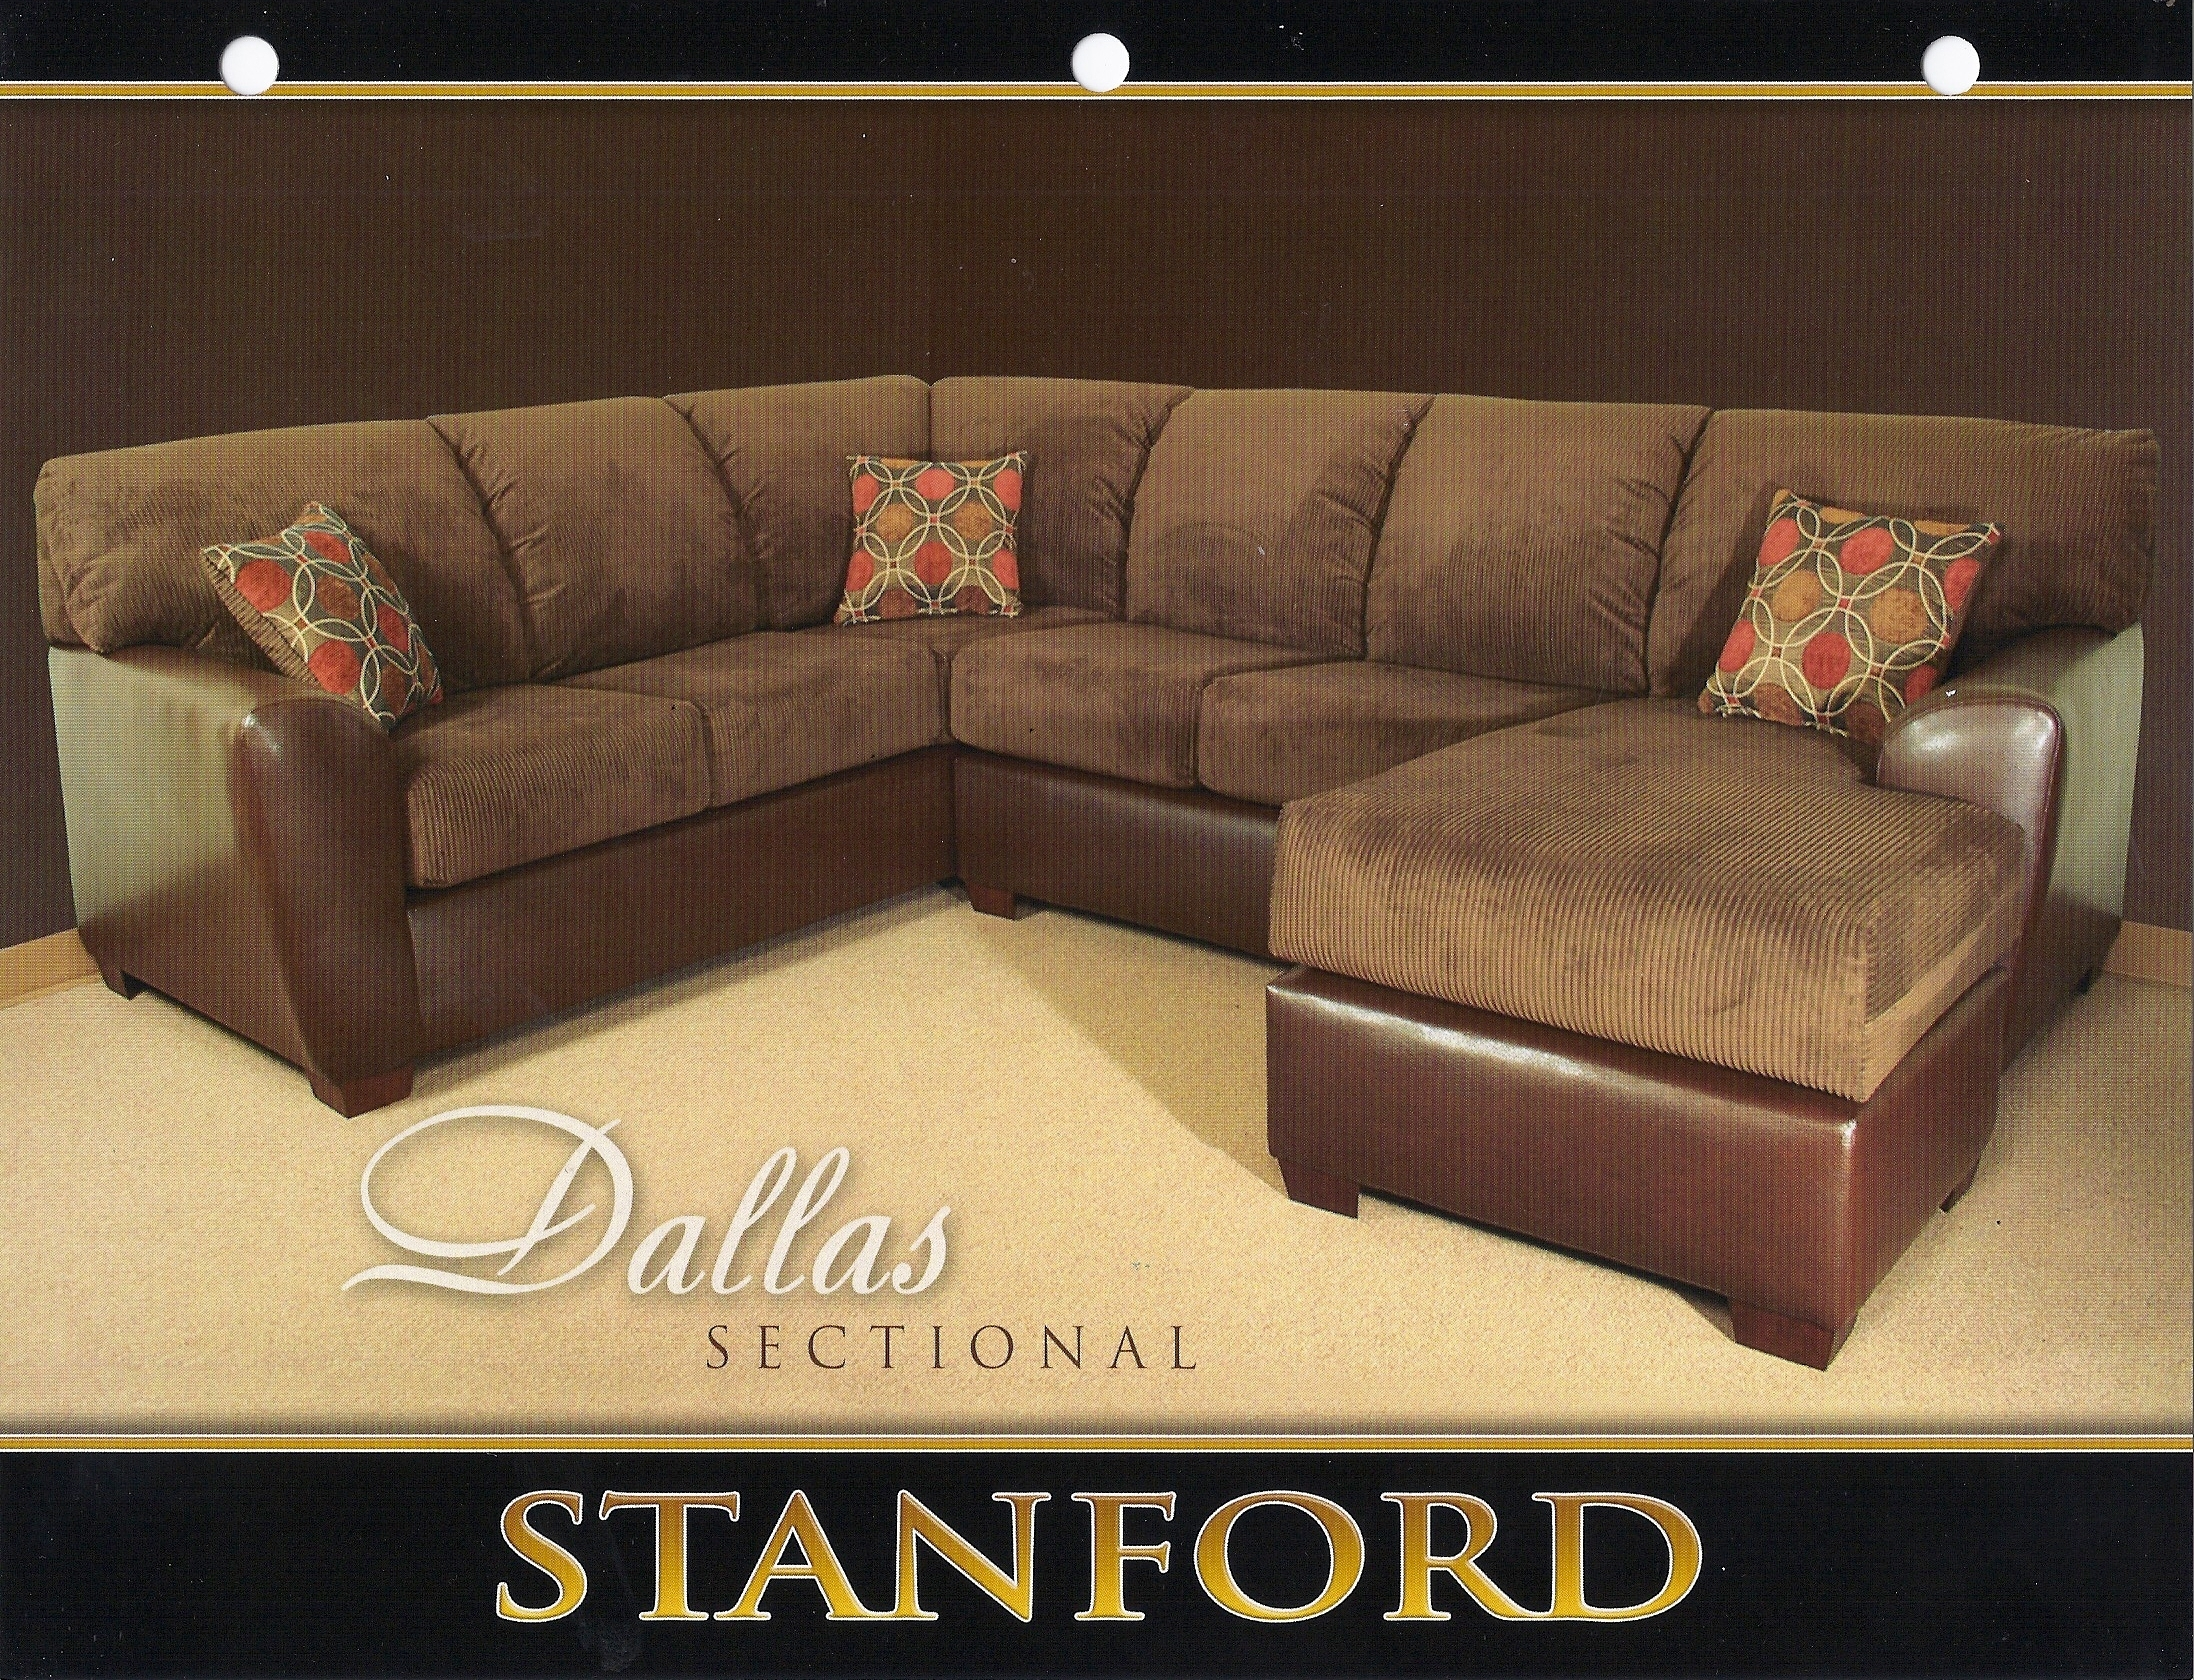 Amazing Sectional Sofa Design Comfort Sofas Dallas Modern Throughout Texas Image